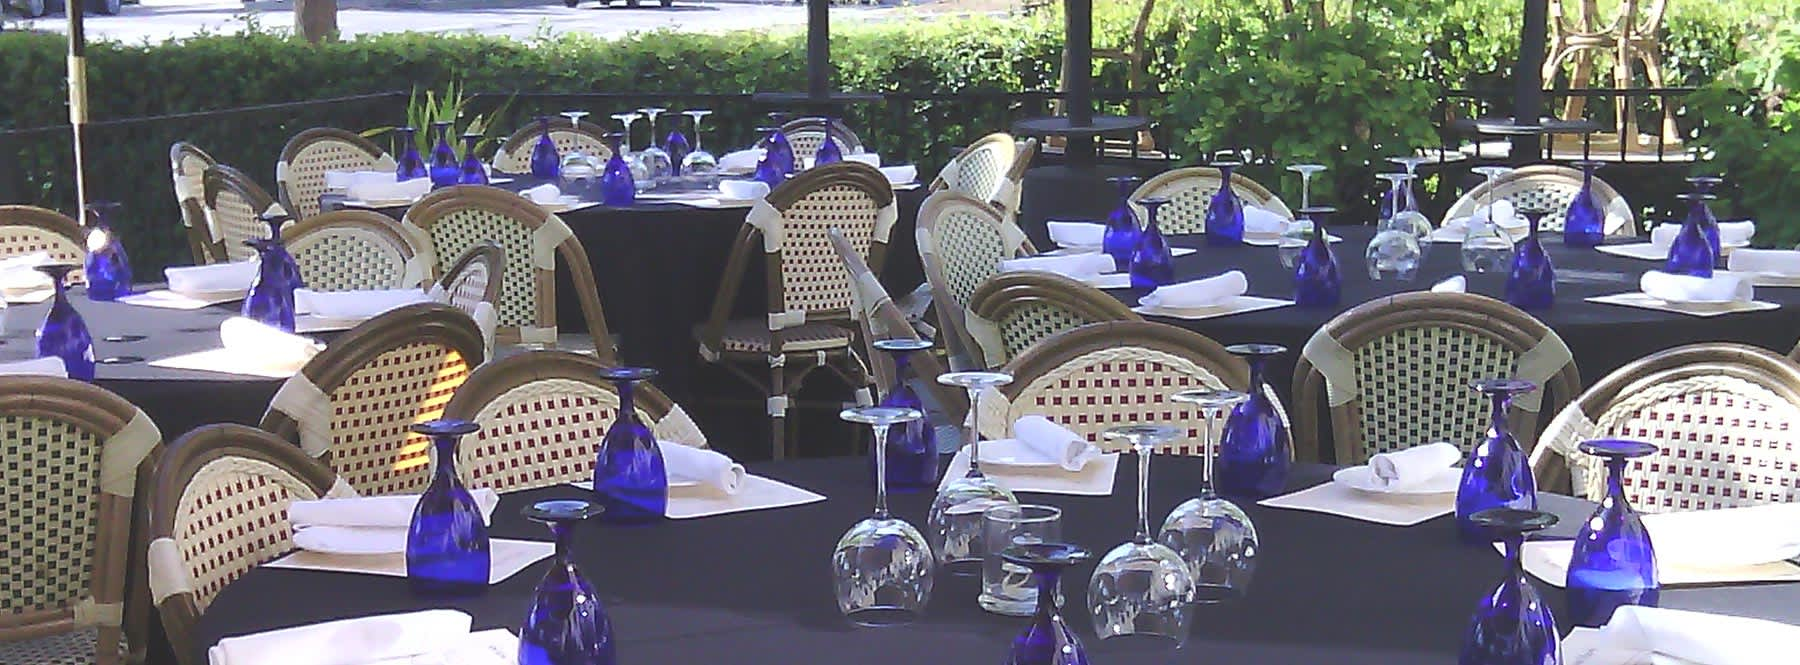 Outdoor Dining at Cucina Venti Restaurant Mountain View